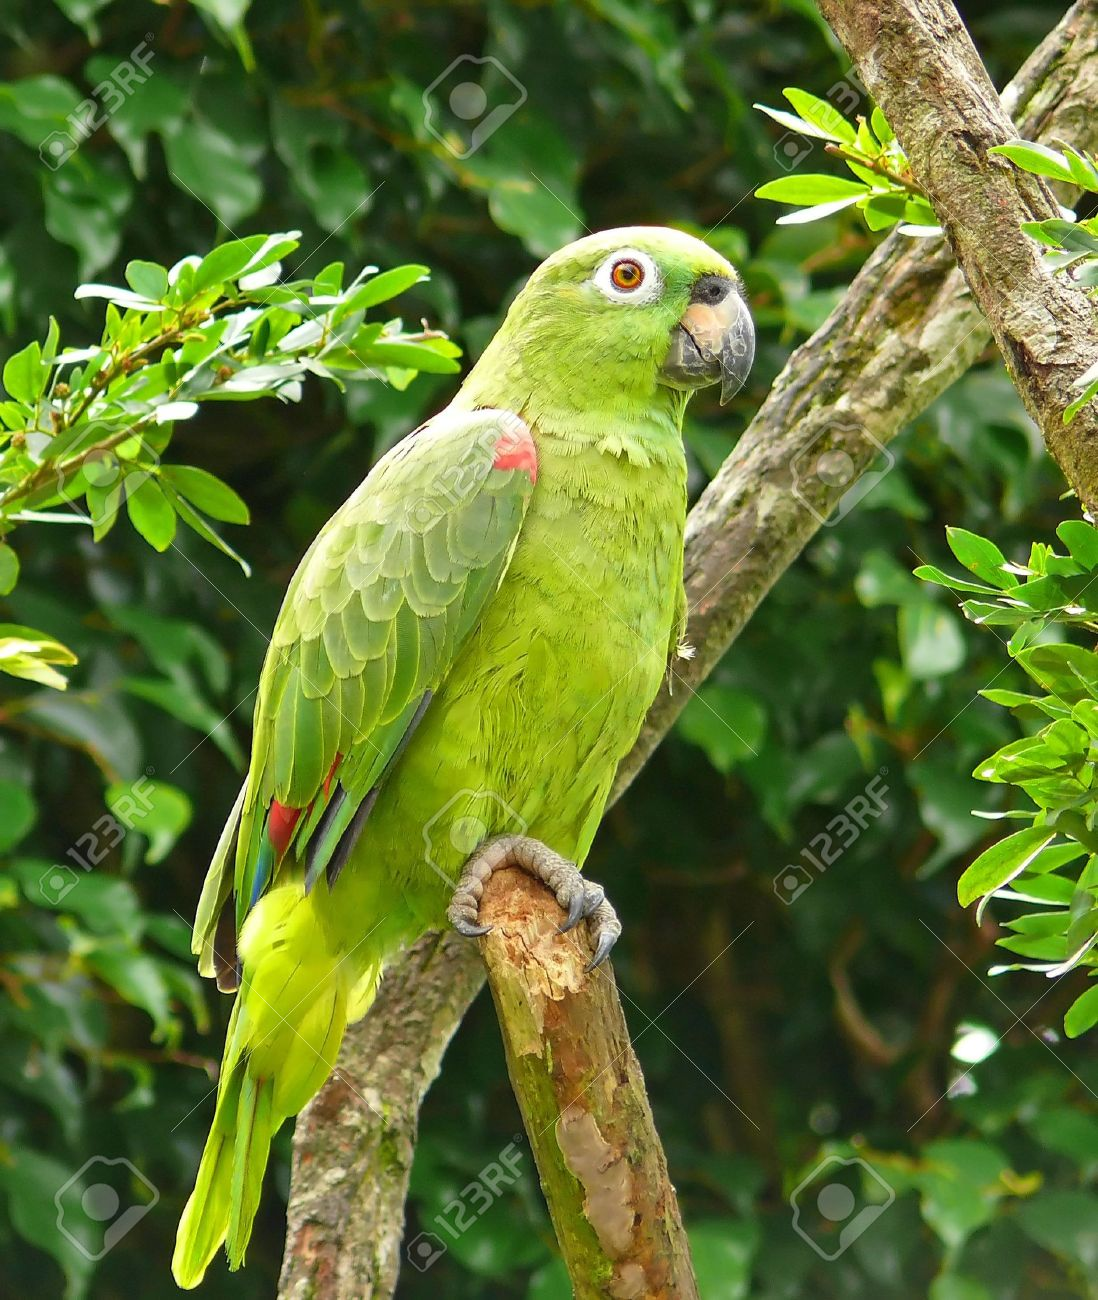 Largest Amazon Parrot a Mealy Amazon Parrot in The